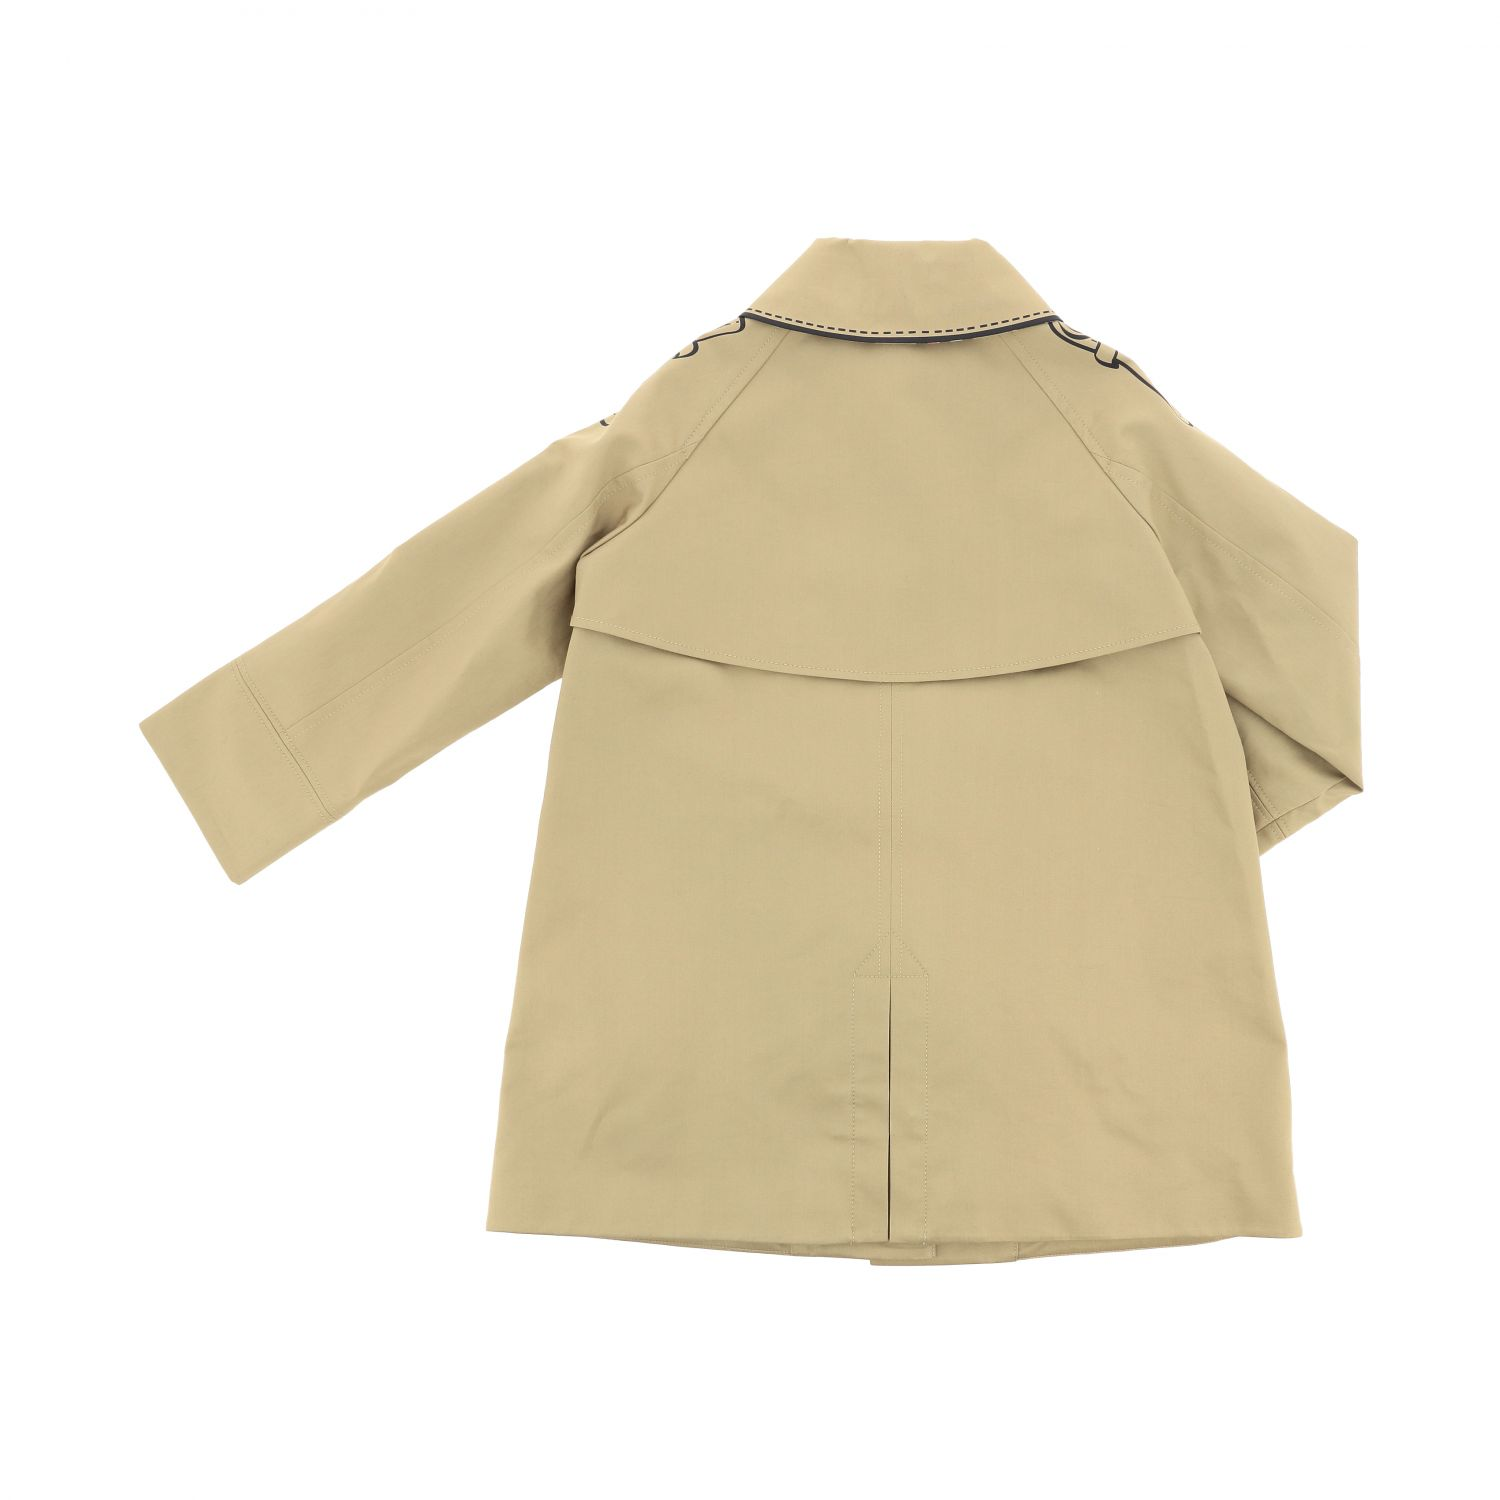 Burberry trench coat with button print beige 2